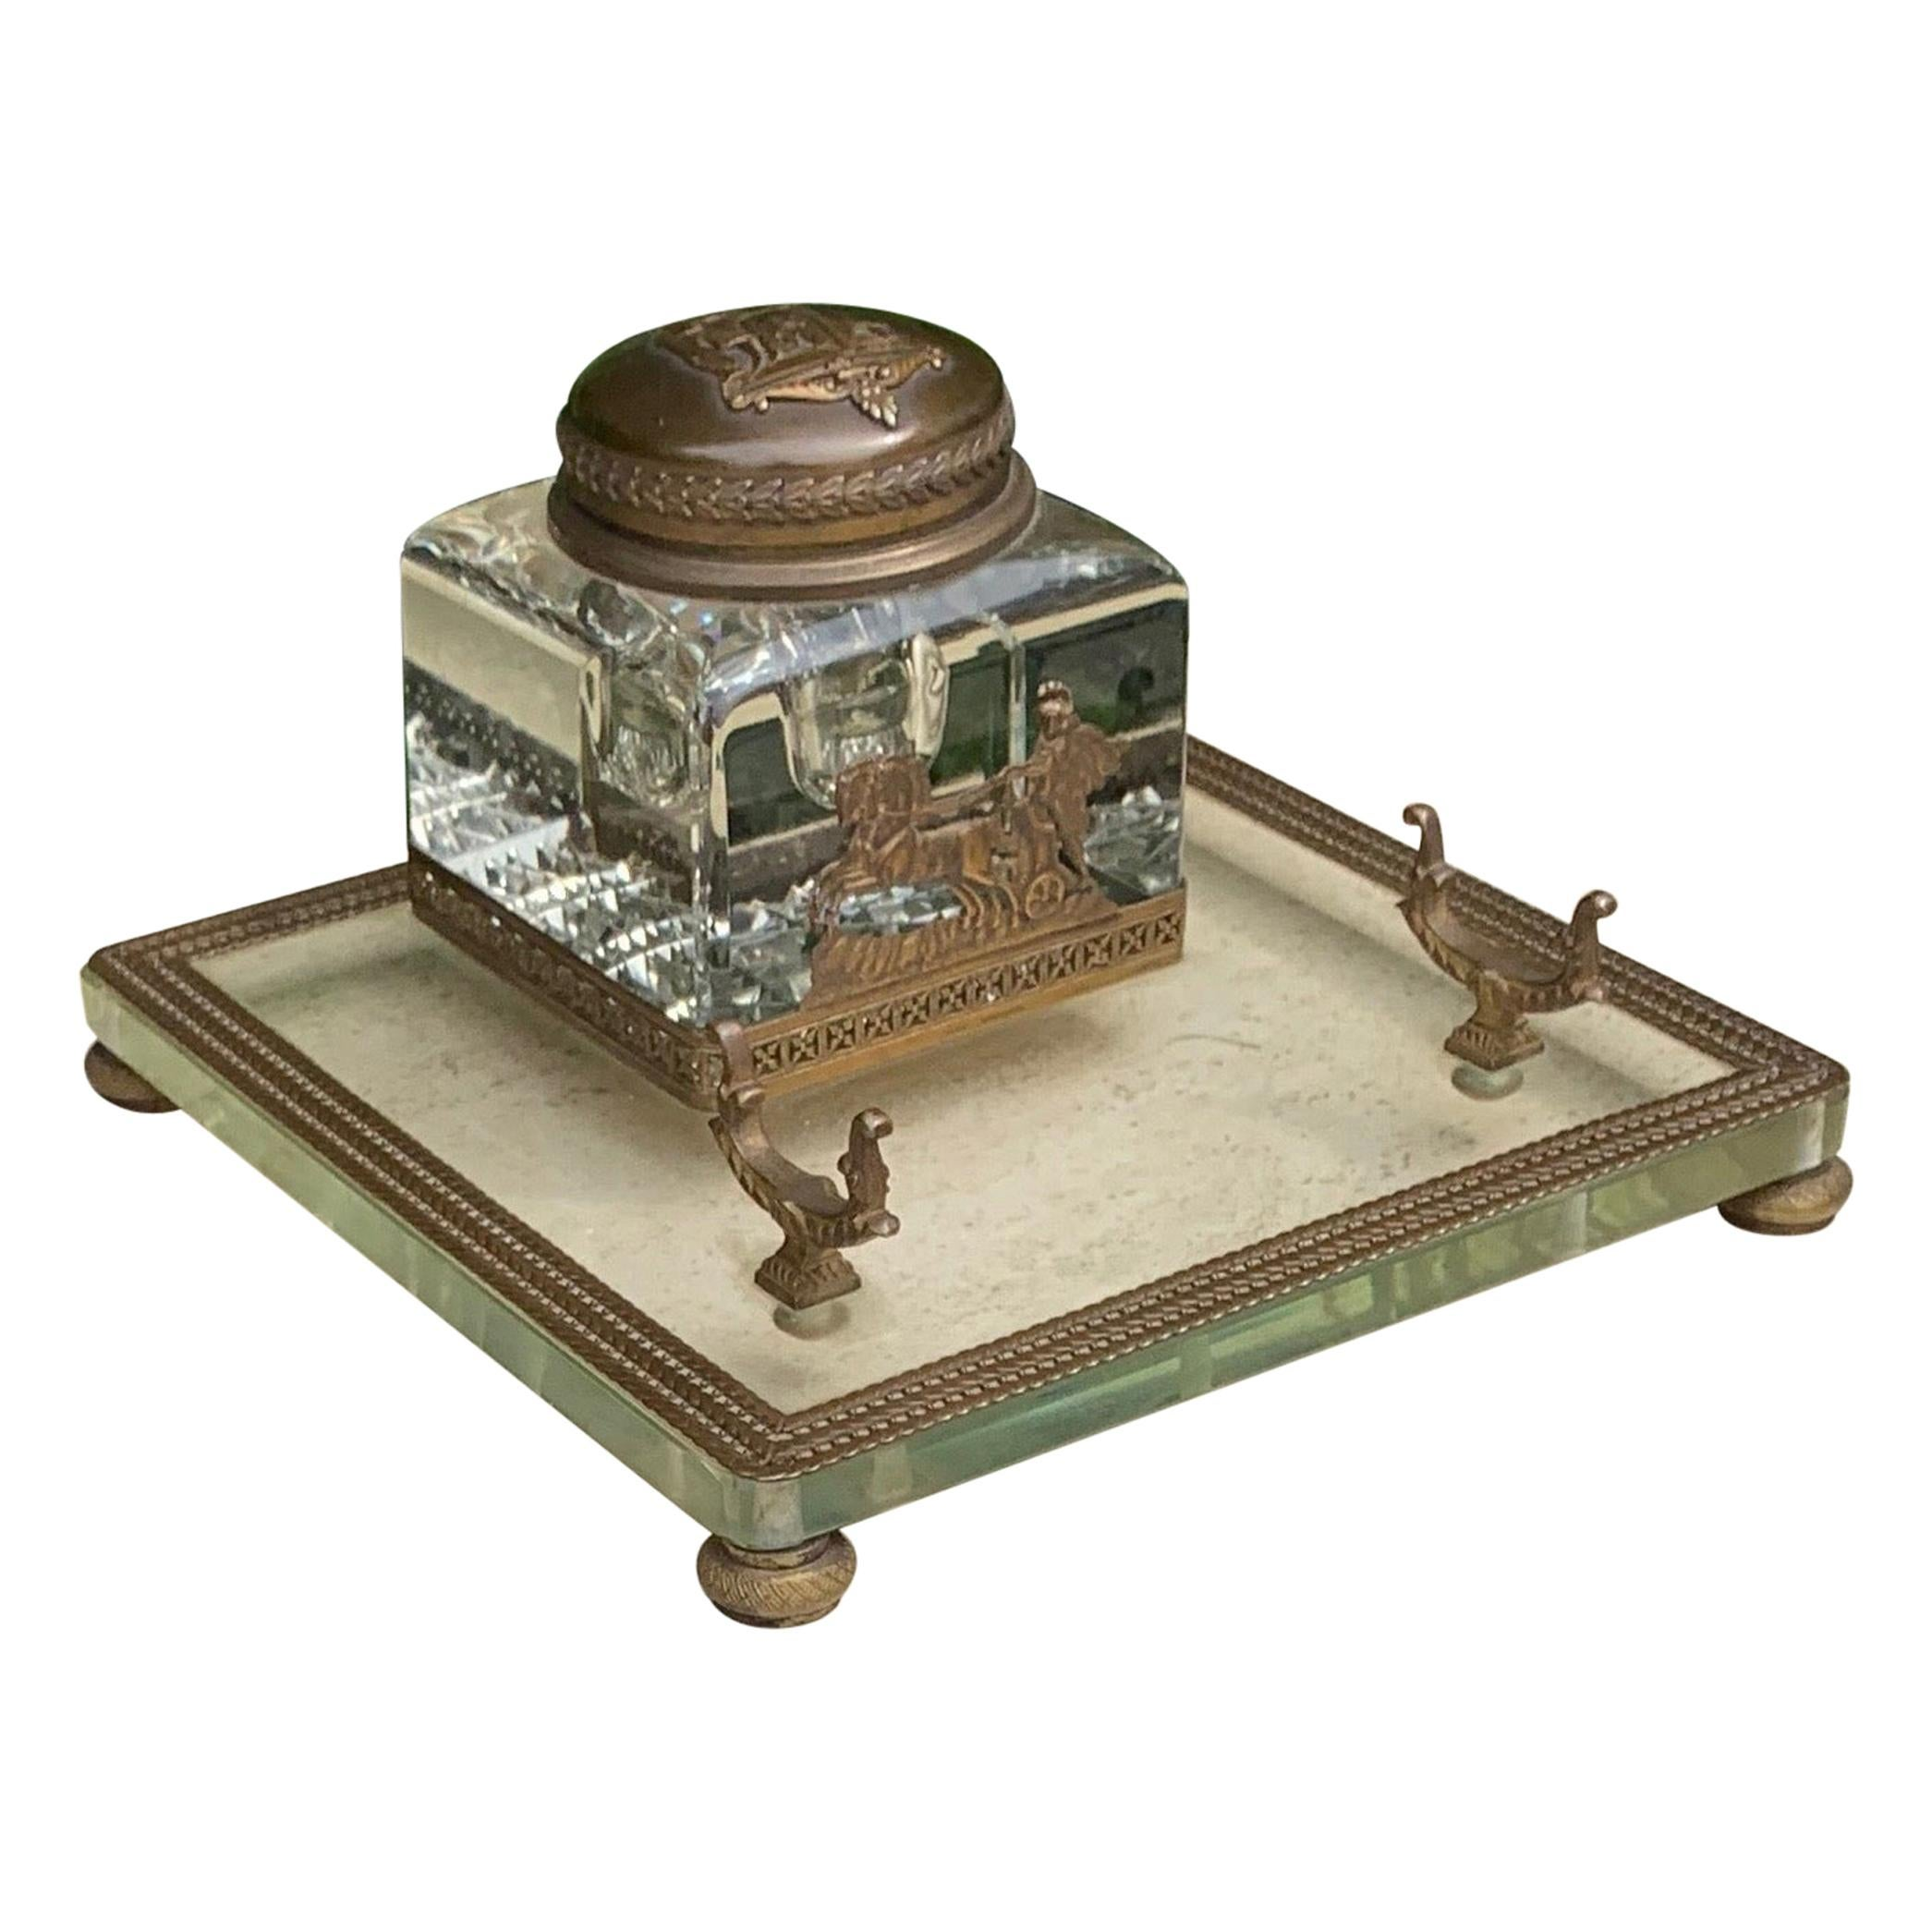 Rare Antique Classical Roman Bronze & Glass Inkstand with Crystal Glass Inkwell